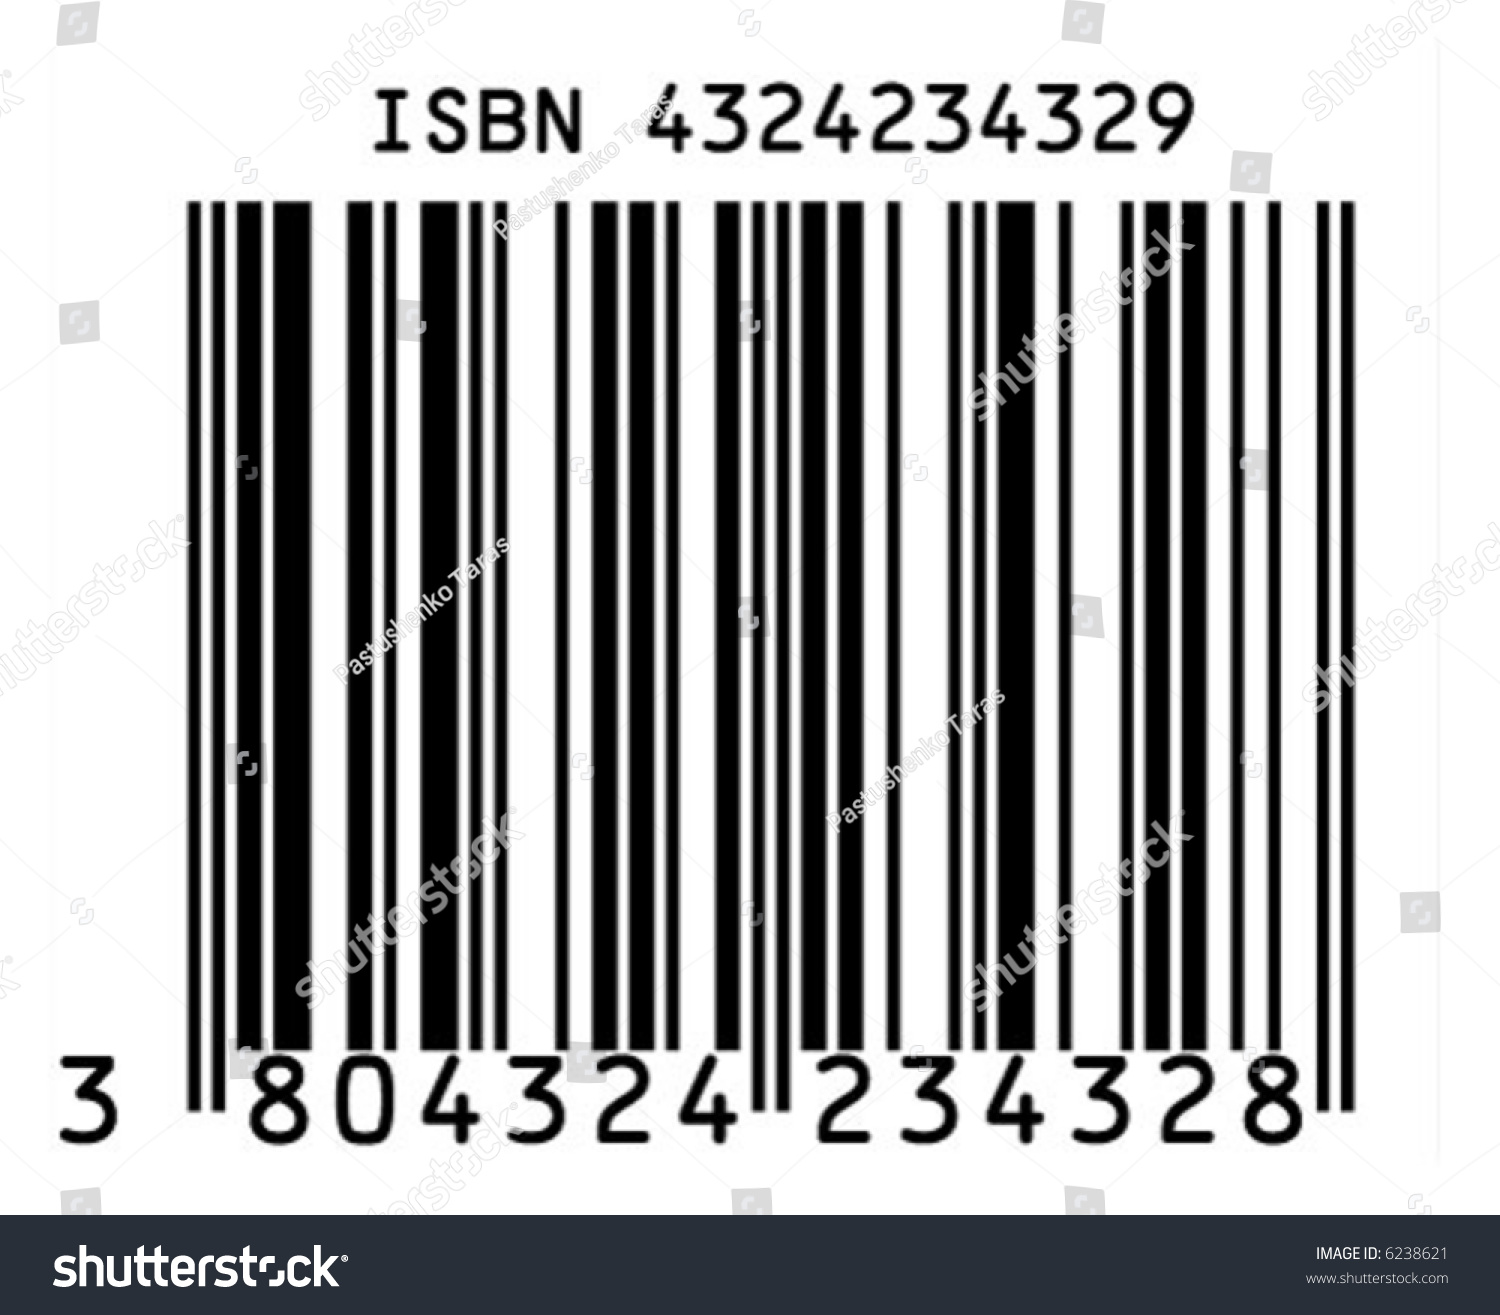 how to read price from barcode